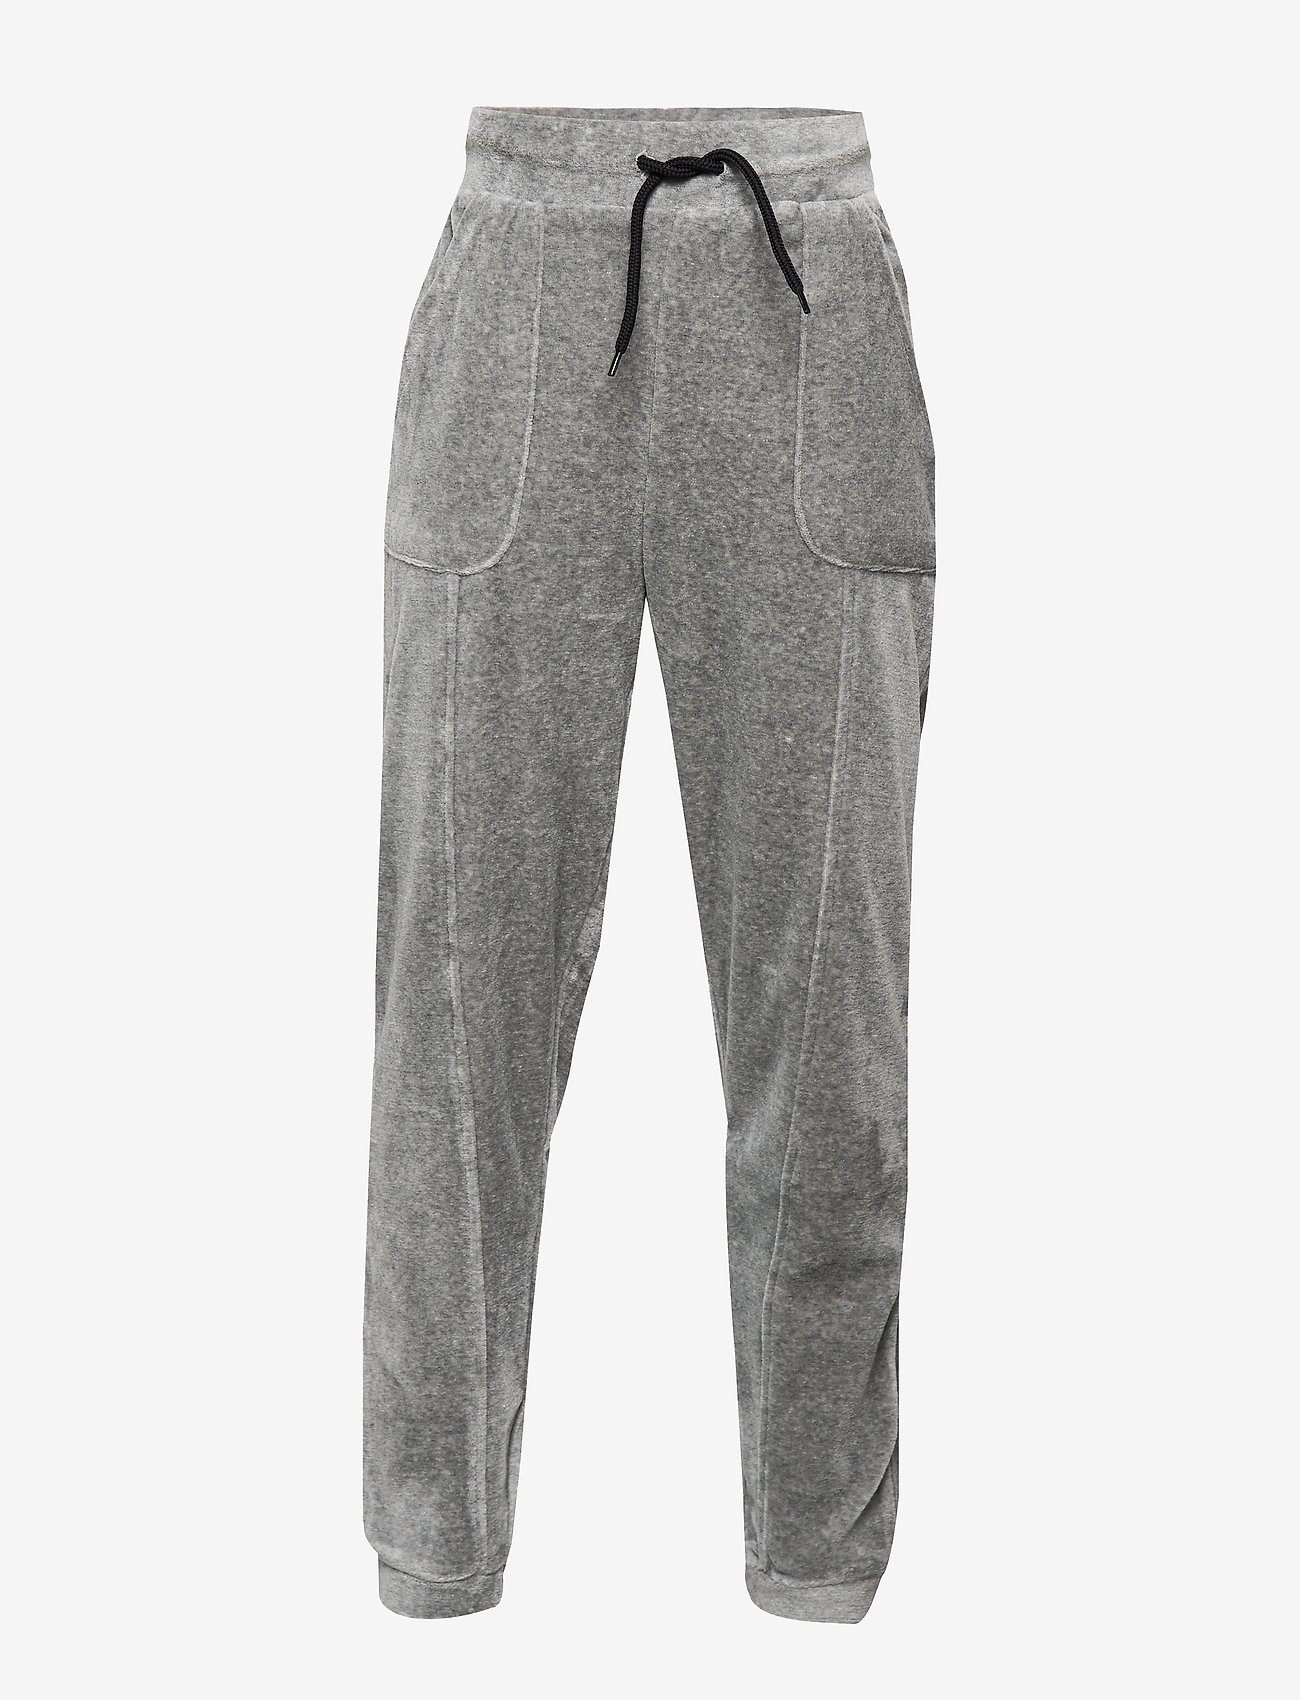 Mini A Ture - Lawrence Pants, K - sweatpants - light grey melange - 0